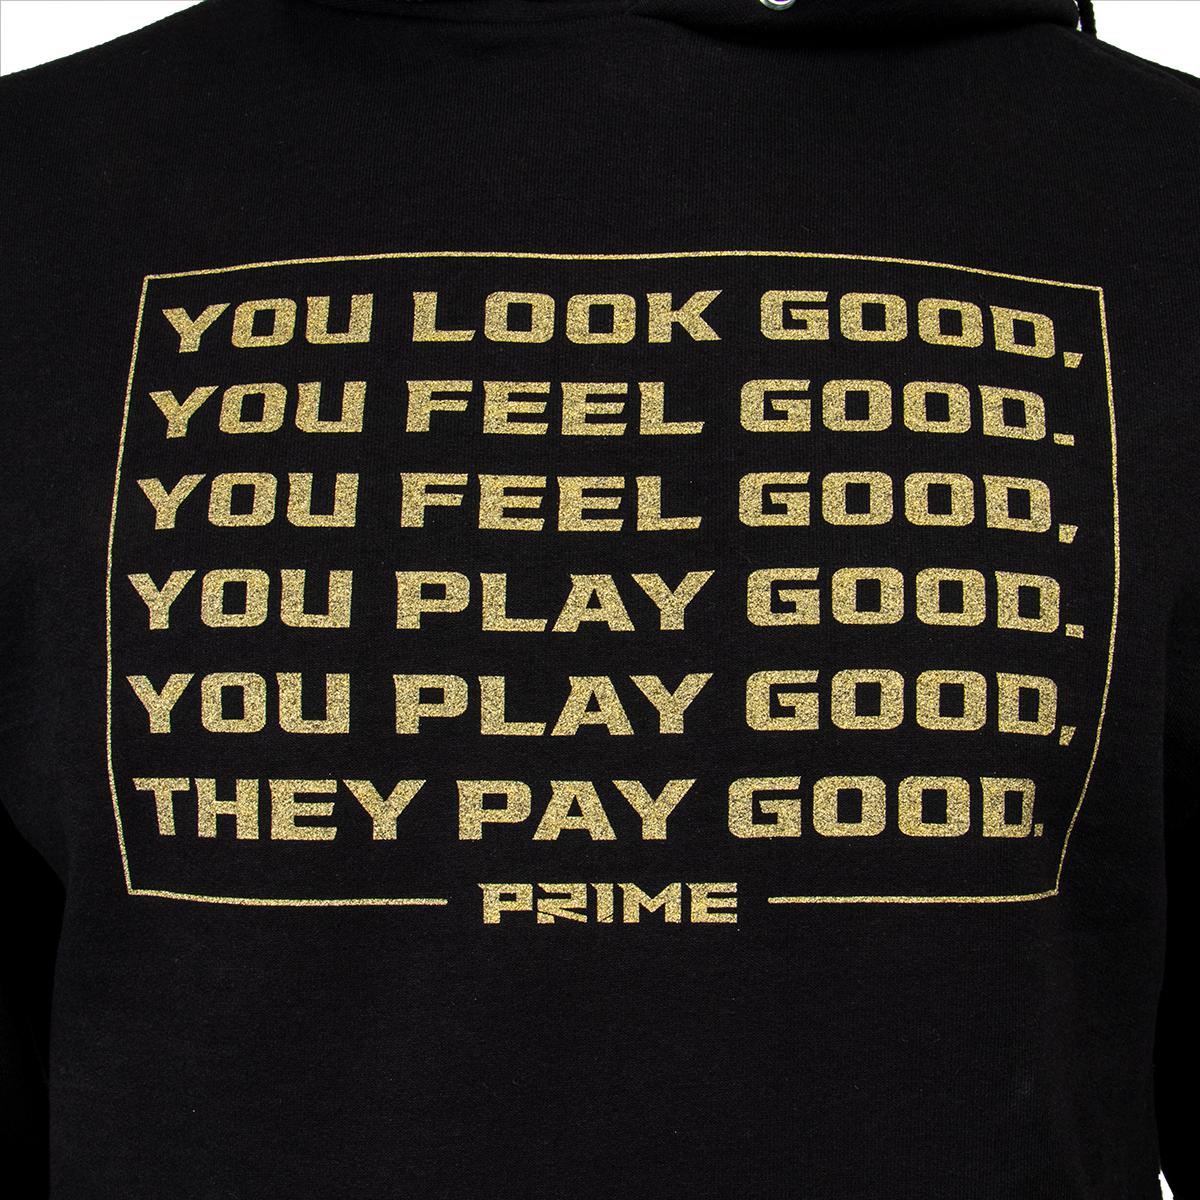 They Pay Good Hoodie